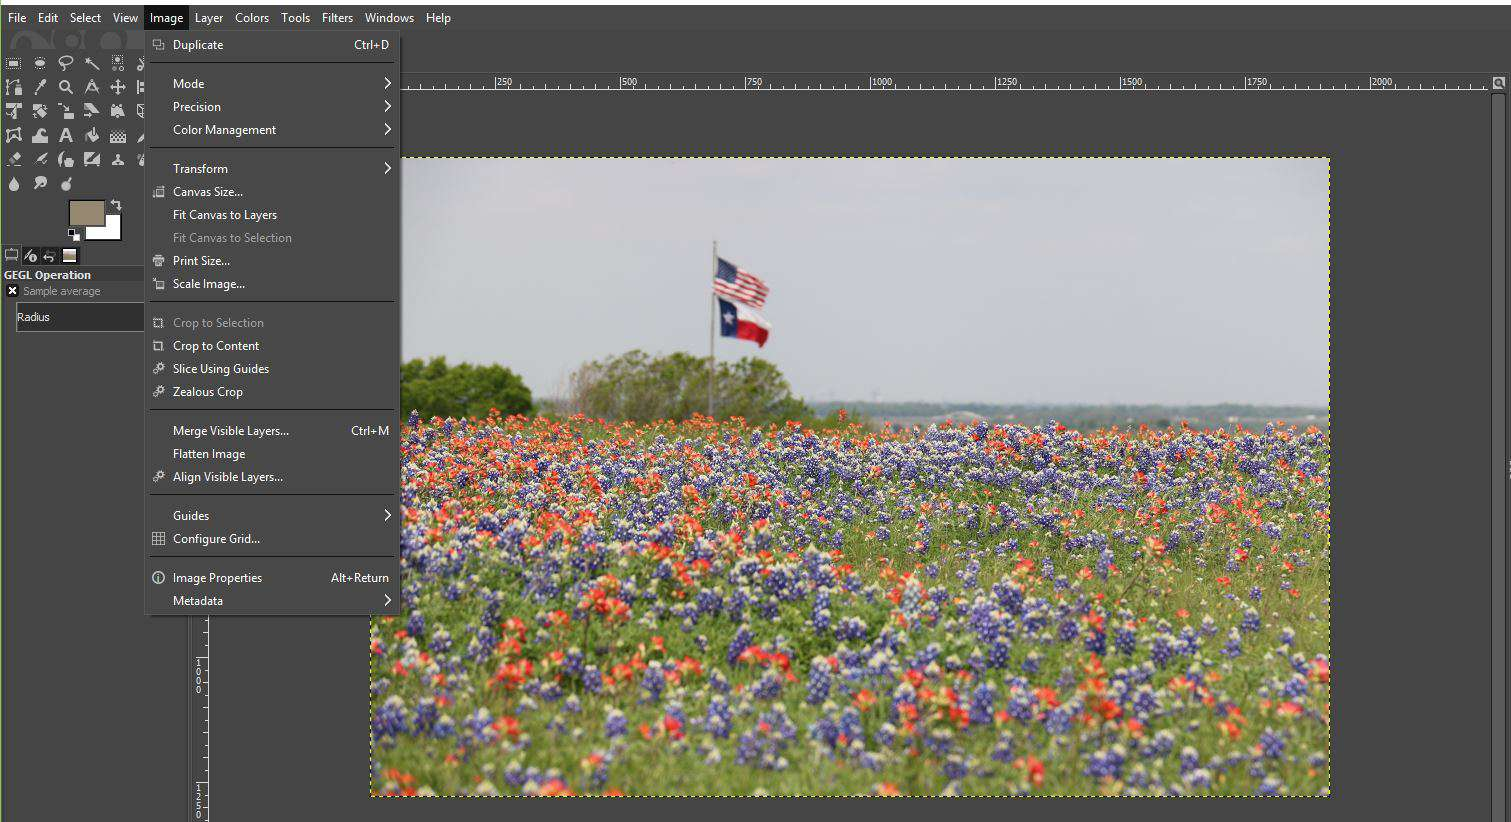 Getting a Color Scheme From an Image in GIMP